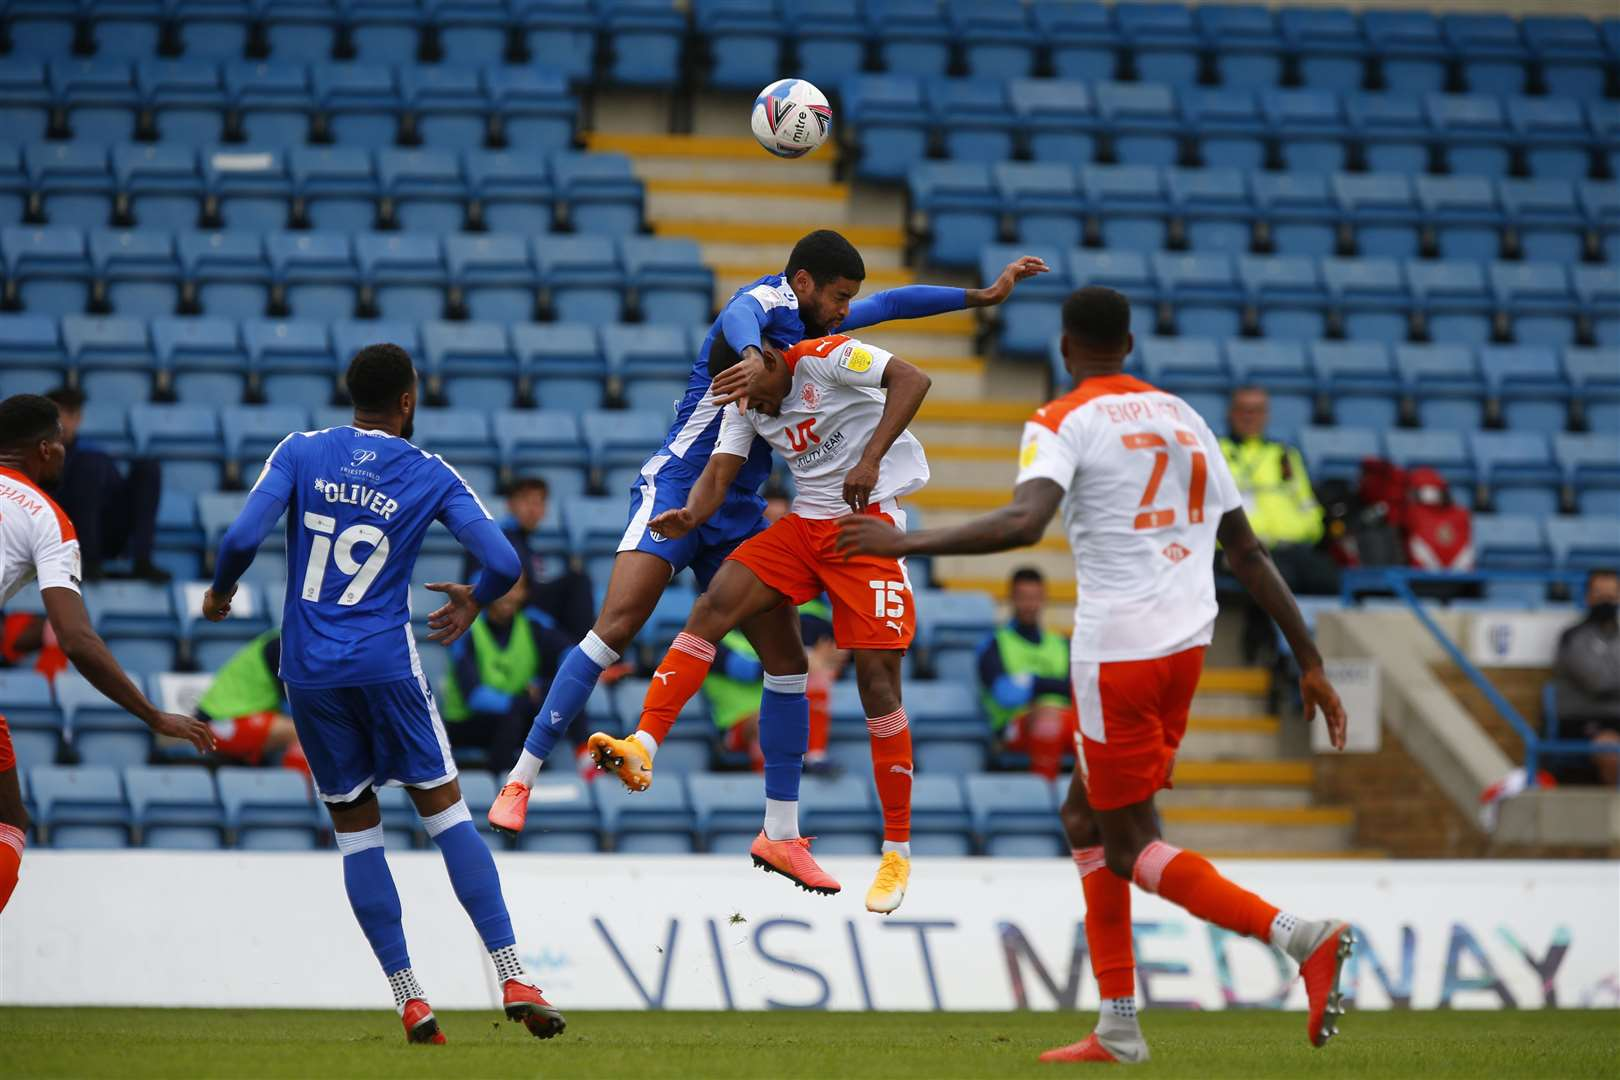 Gillingham beat Blackpool 2-0 earlier in the season.Picture: Barry Goodwin